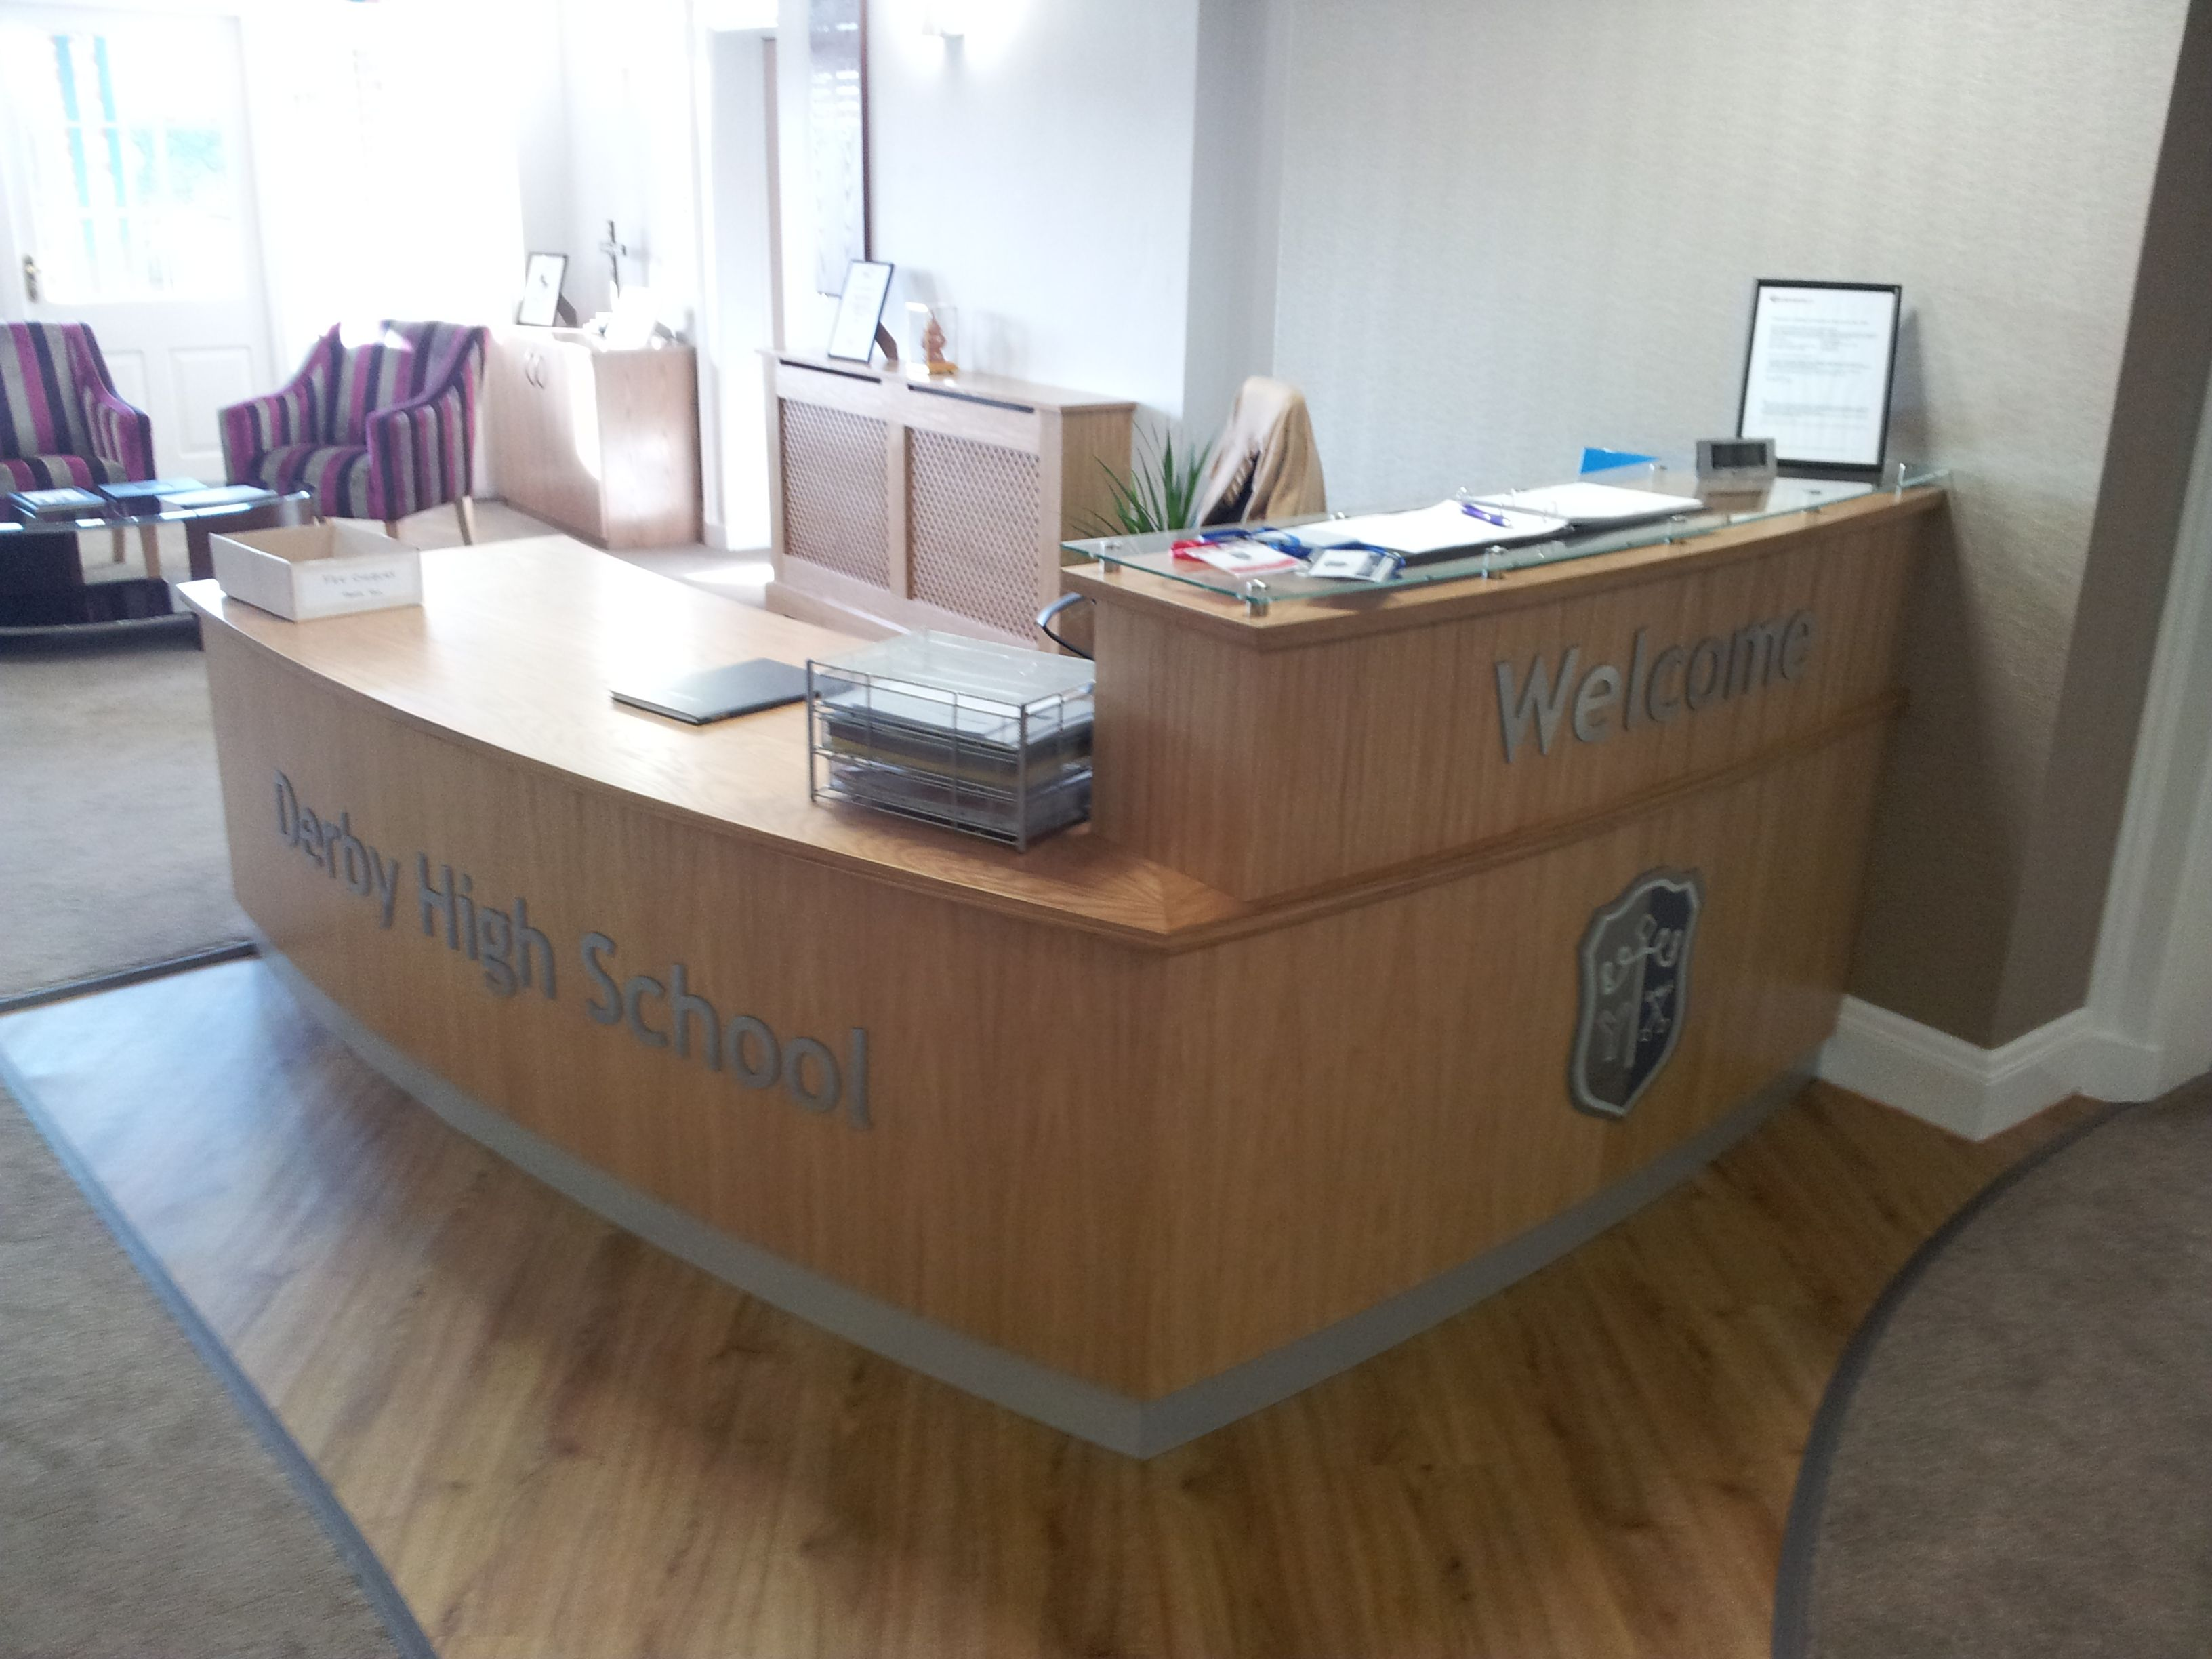 Home gt reception desks gt 8 curved maple glass top reception desk - School Reception Desk In Oak Veneer With Small Pedestal And A Raise Section With A Glass Reception Desksdesk Ideaspedestalreceptions